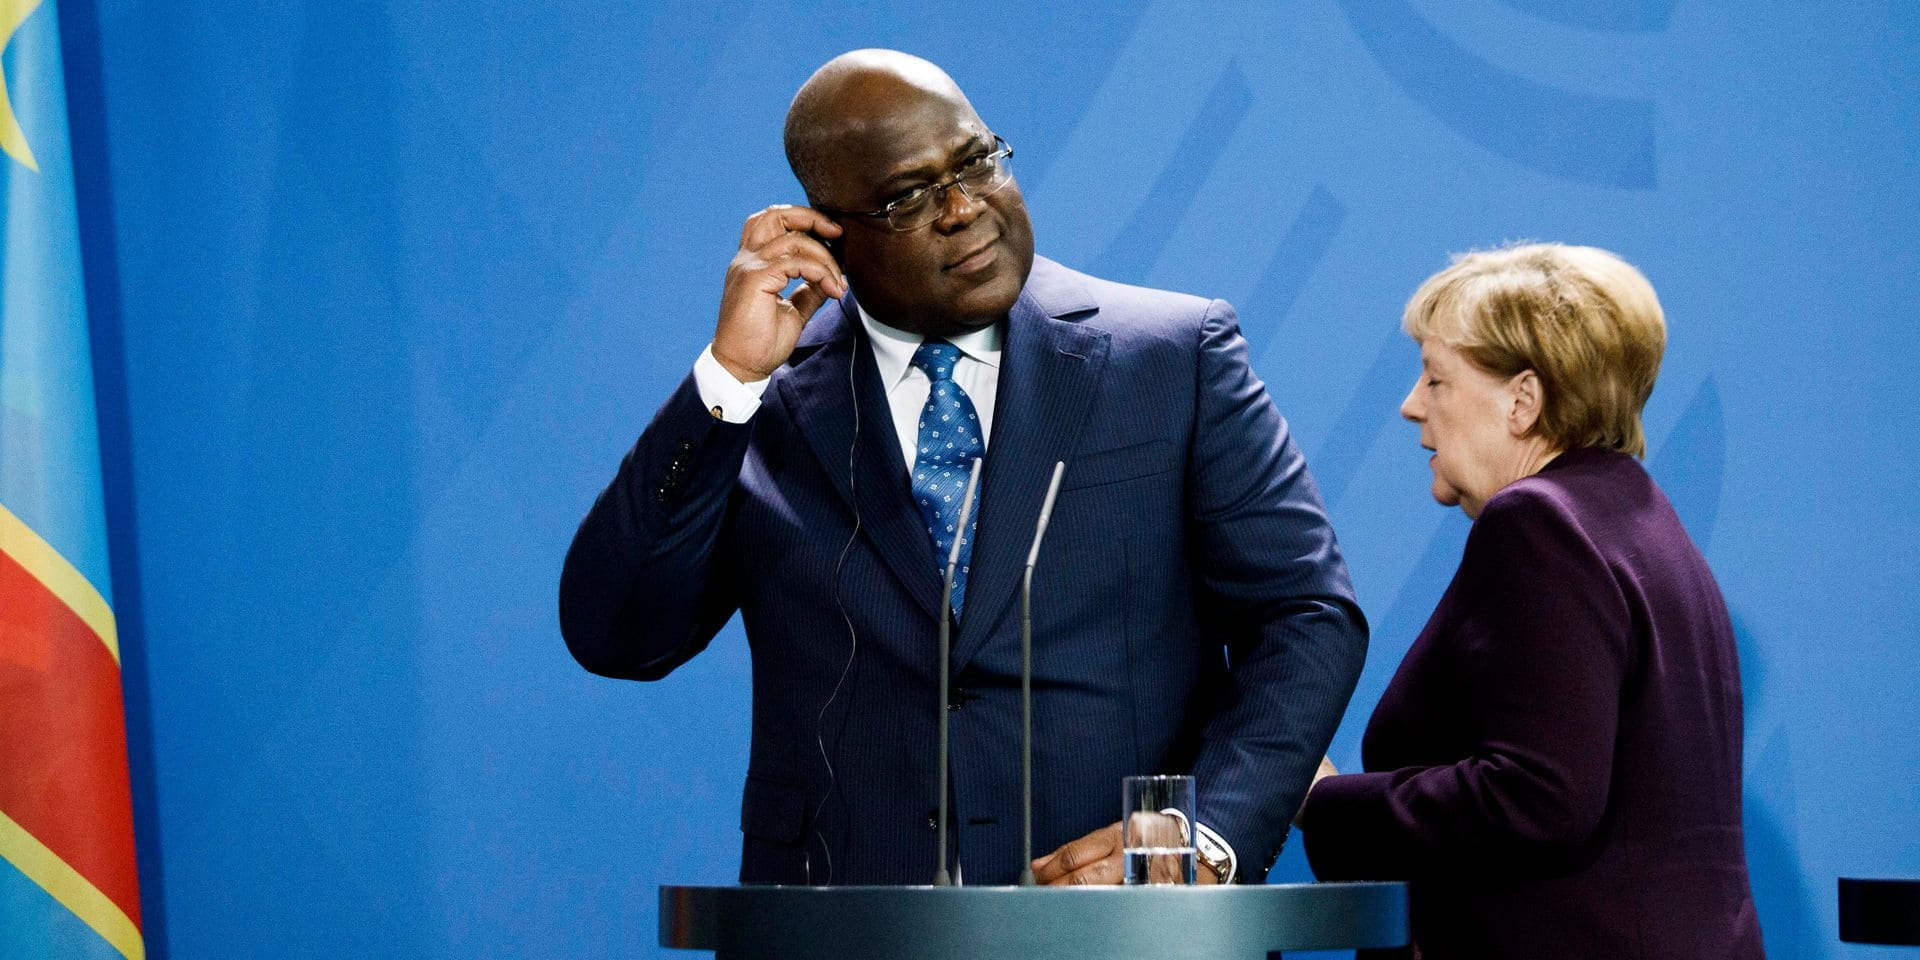 Merkel receives President of the Democratic Republic of Congo